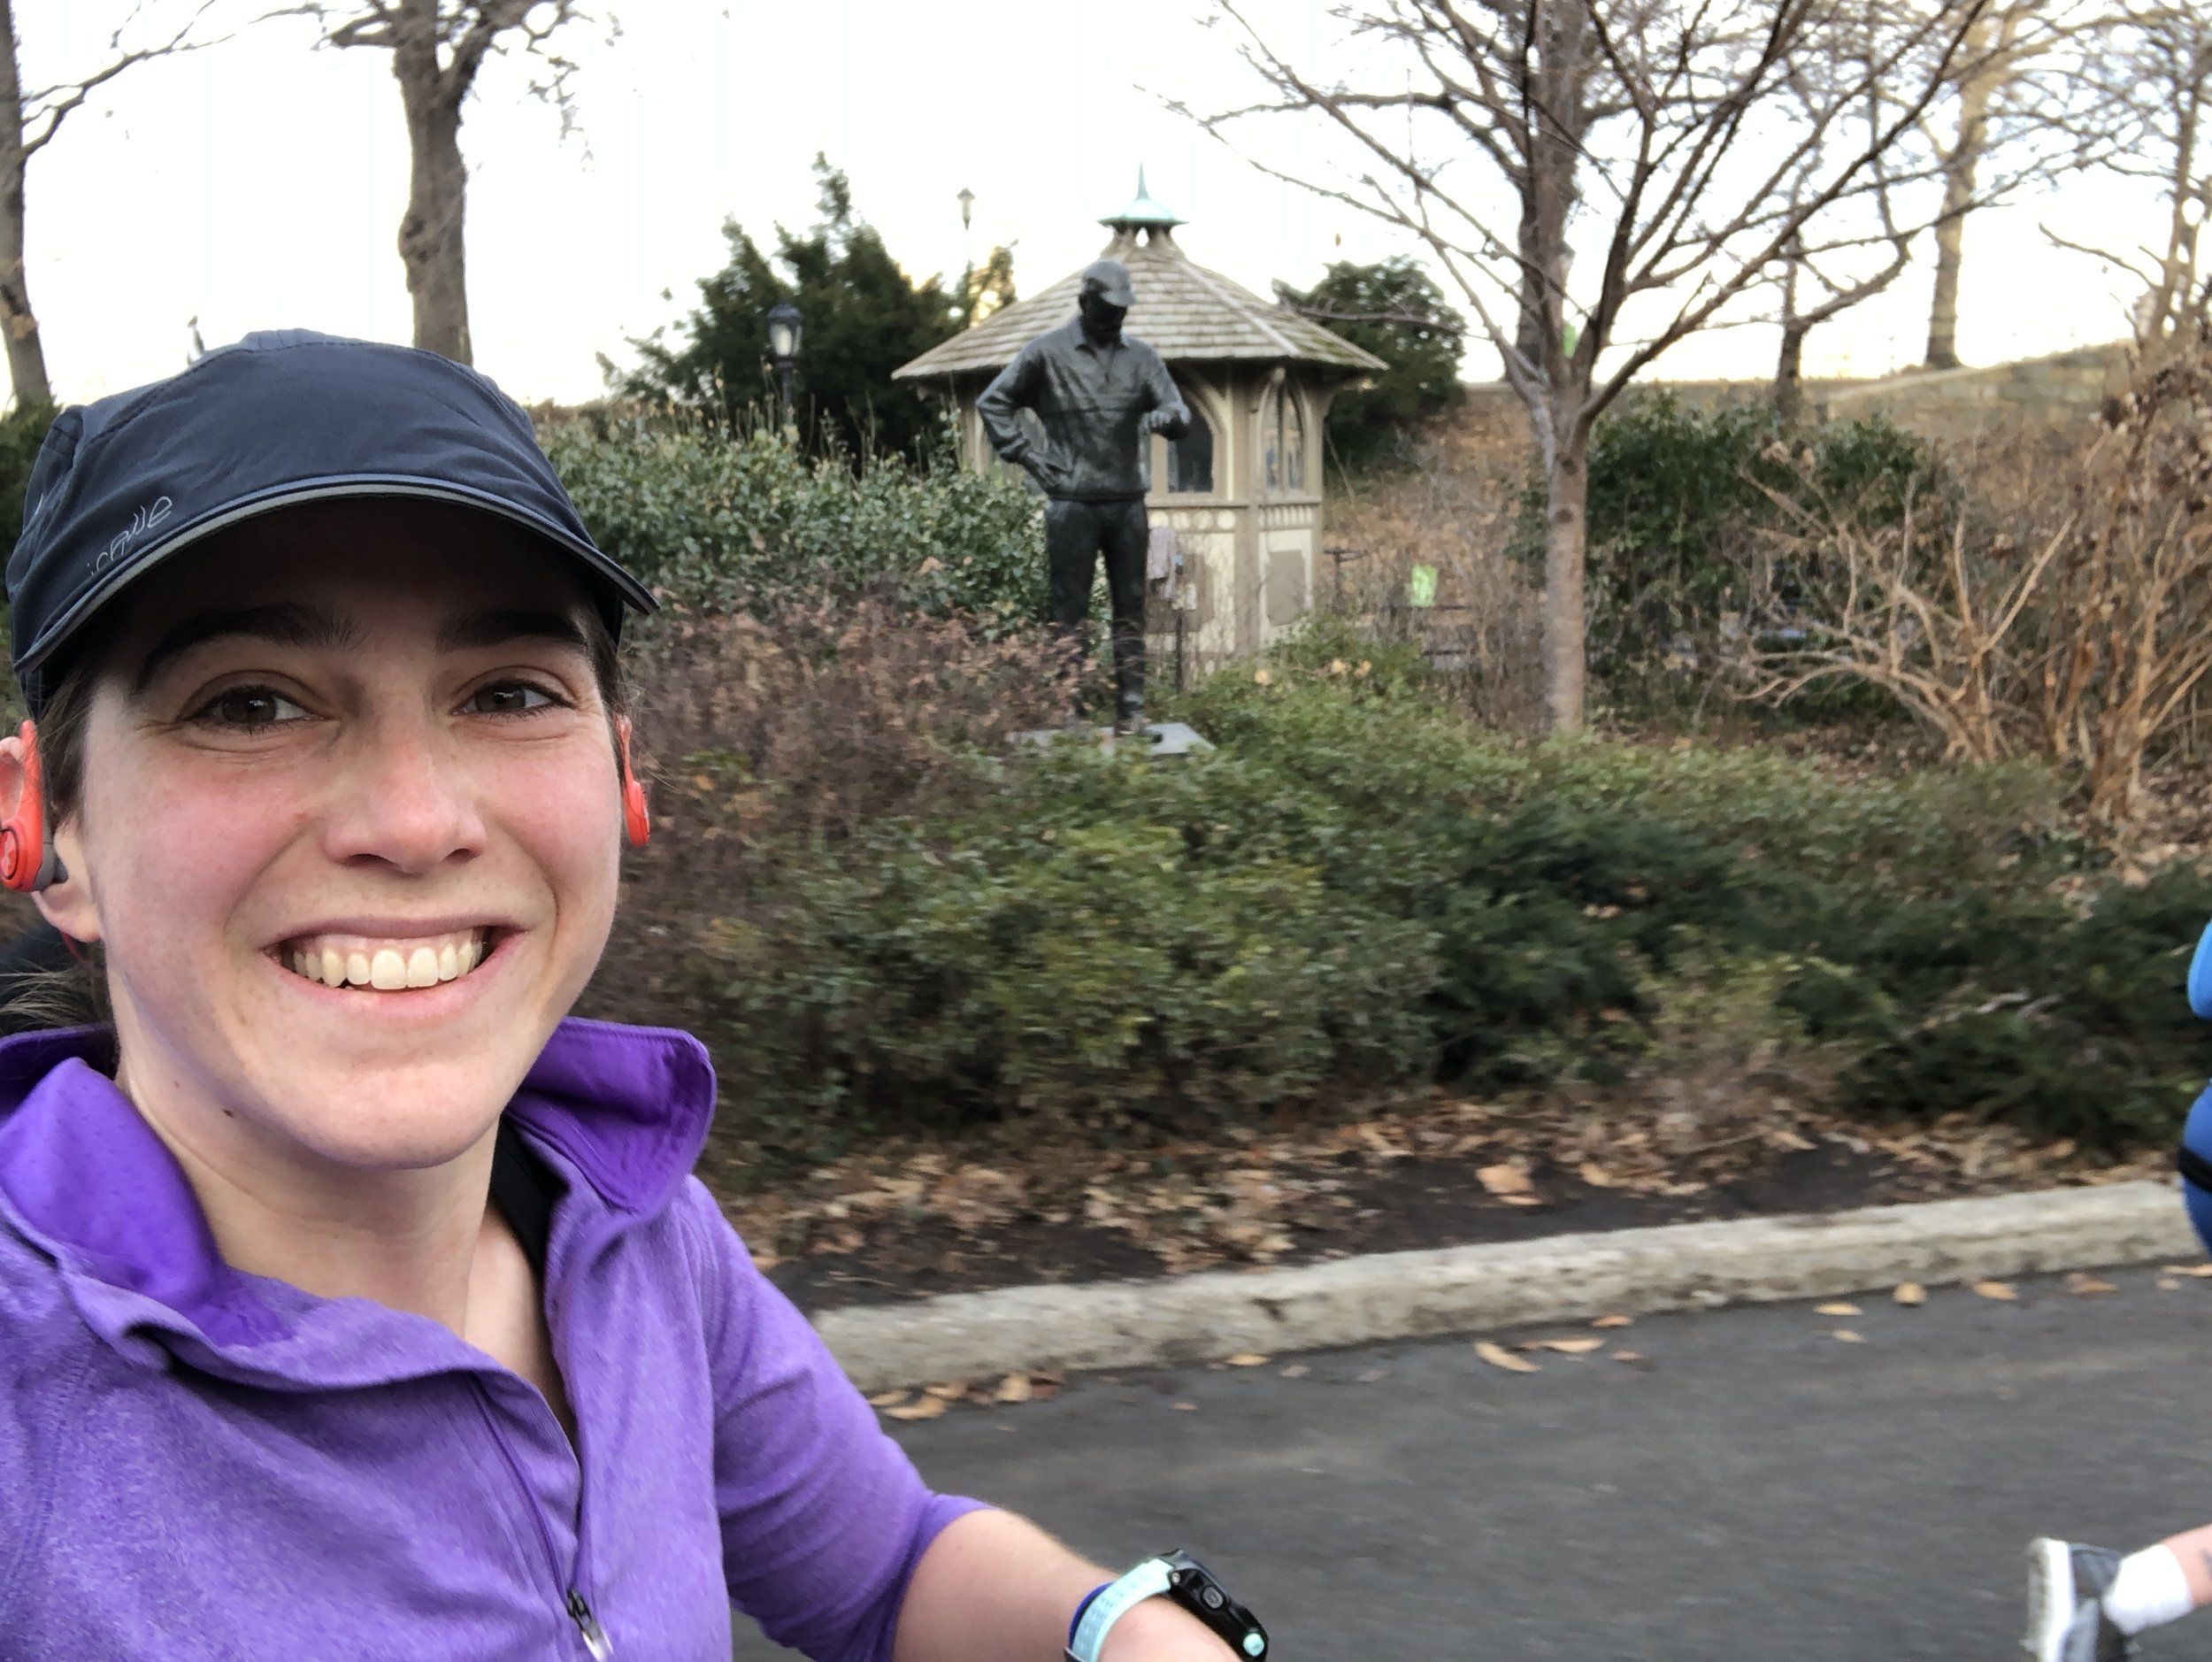 Had to get a selfie with the Fred Lebow statue as I ran by!